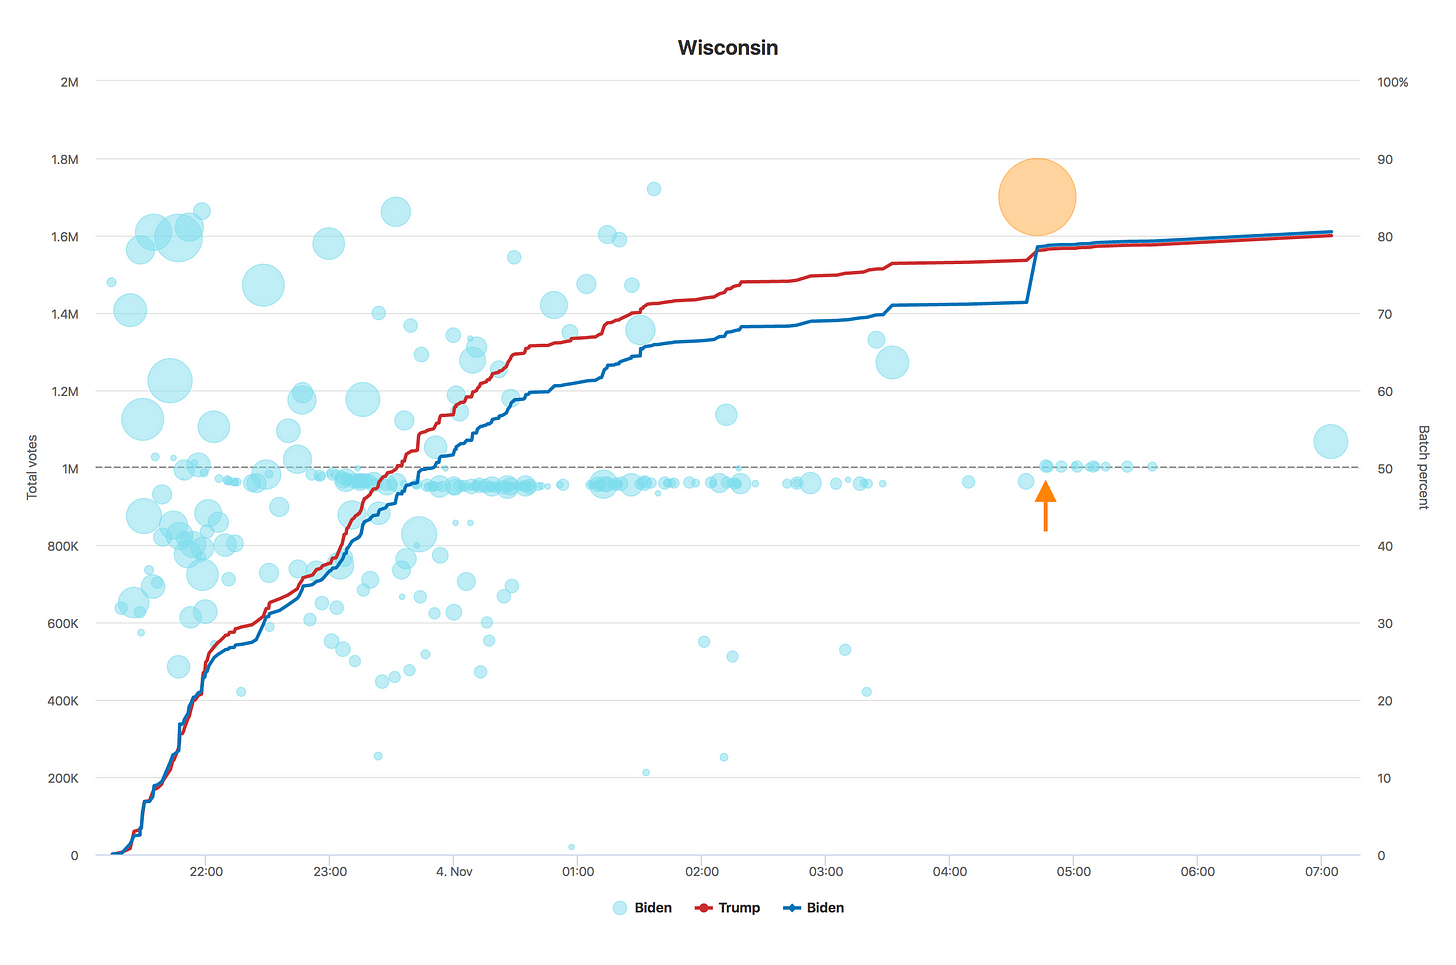 Chart of Wisconsin voting data over time